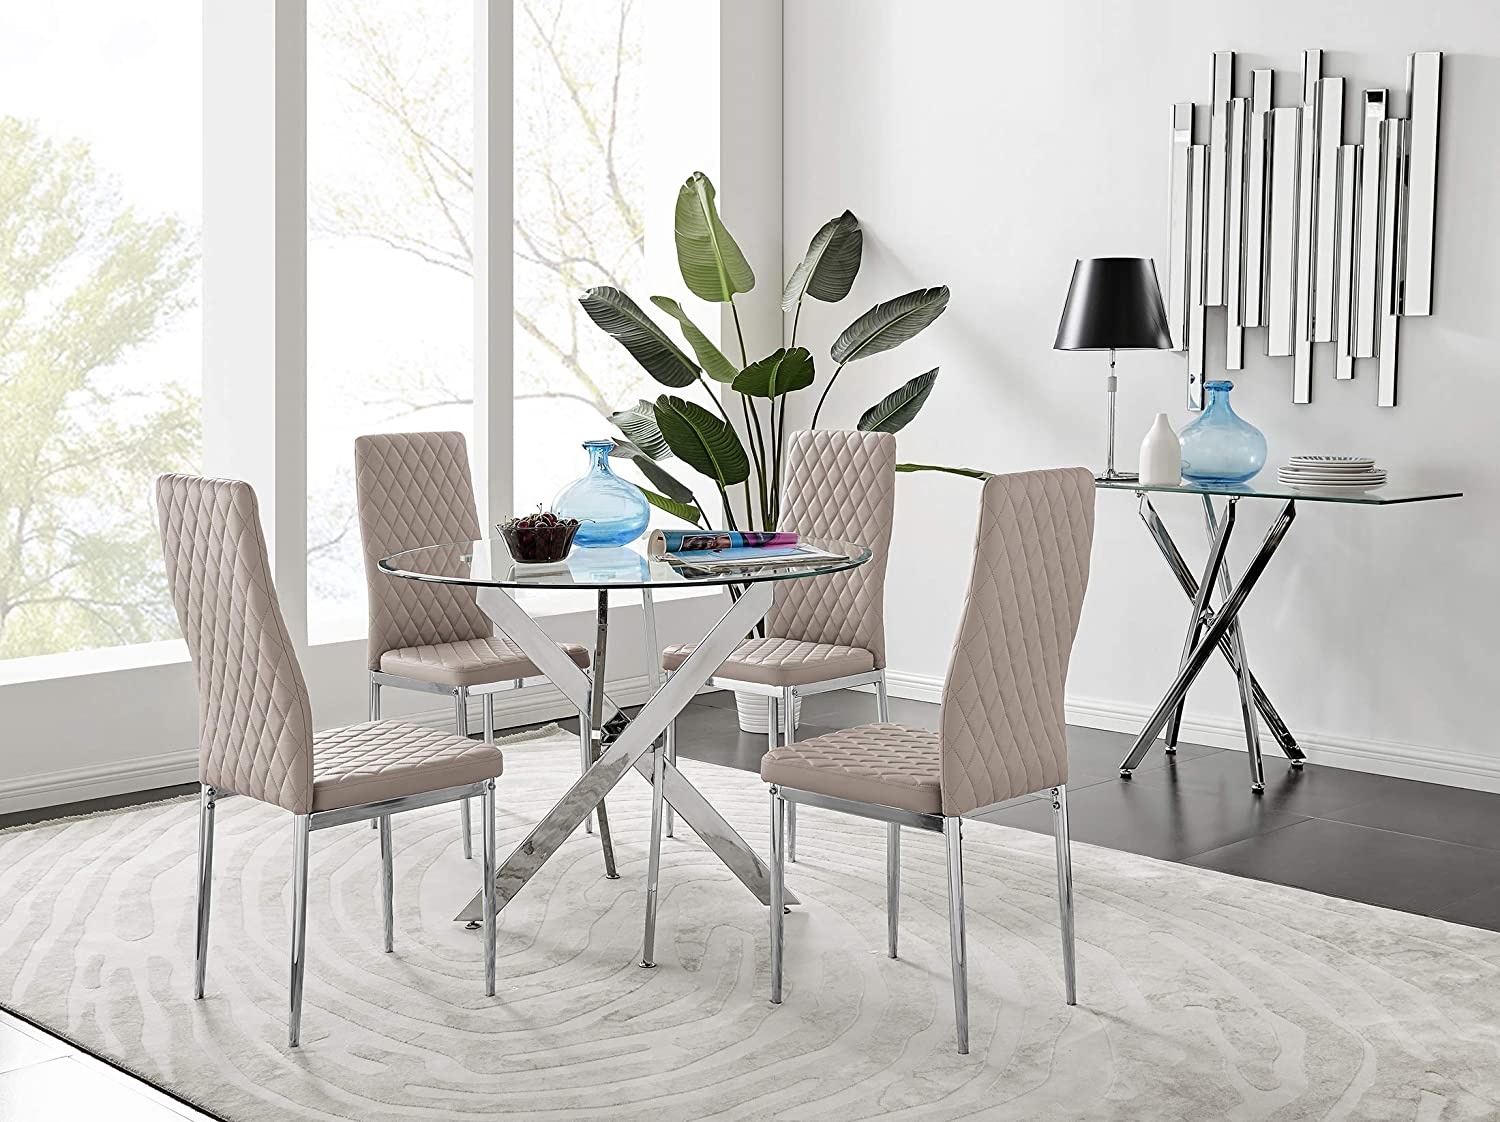 Novara Modern Round Chrome Metal And Clear Glass Dining Table And 9 Stylish  Faux Leather Chrome Leg Milan Dining Chairs Set Dining Table + 9 ...